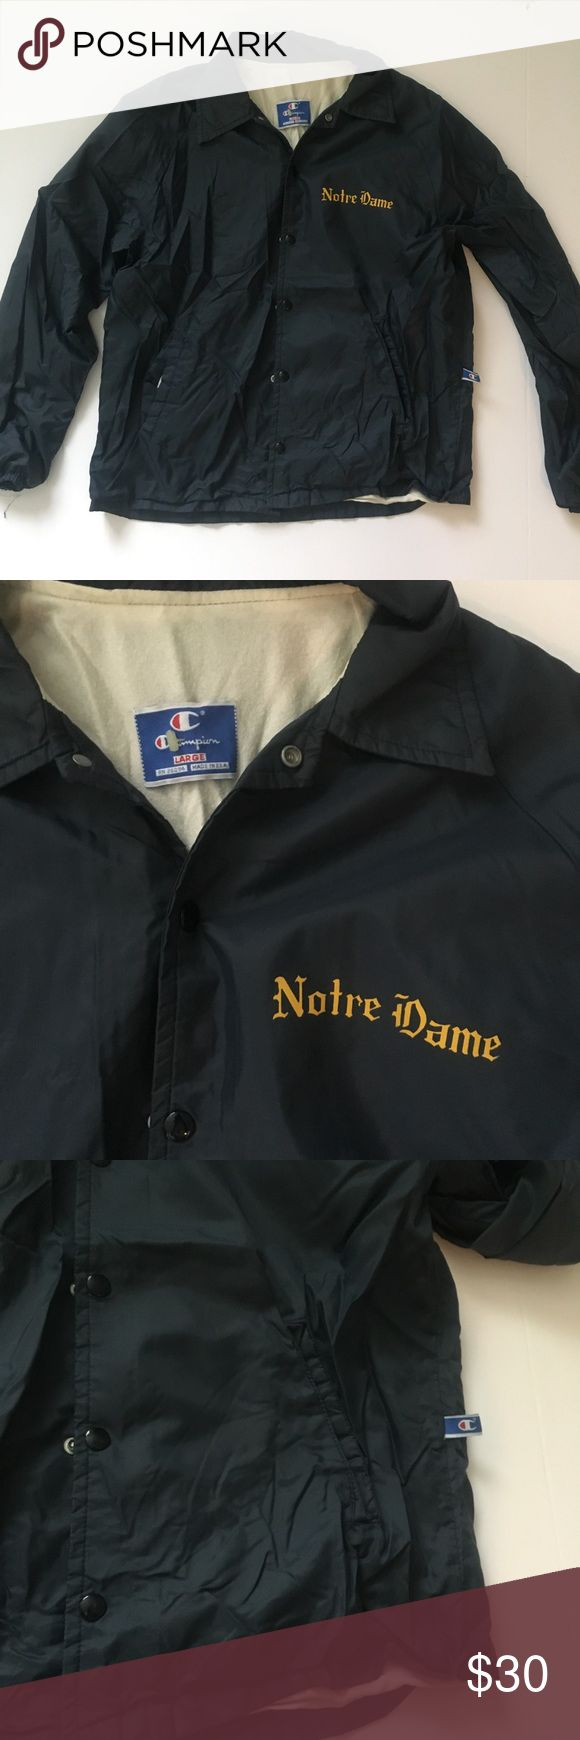 Vintage men's champion Notre dame windbreaker •Men's vintage champion Notre Dame Windbreaker. Navy blue/ dark gray color snap button front  •Size: Large  •All Items checked for stains, holes, and excessive wear: If no issues noted then item is in very good condition!  •Comes from smoke free home •Have cats: all items come freshly laundered but a few hair might be on clothing.  •Open to offers  •Bundle discounts available  •Ships within 24 hours of purchasing, will communicate if not able to…